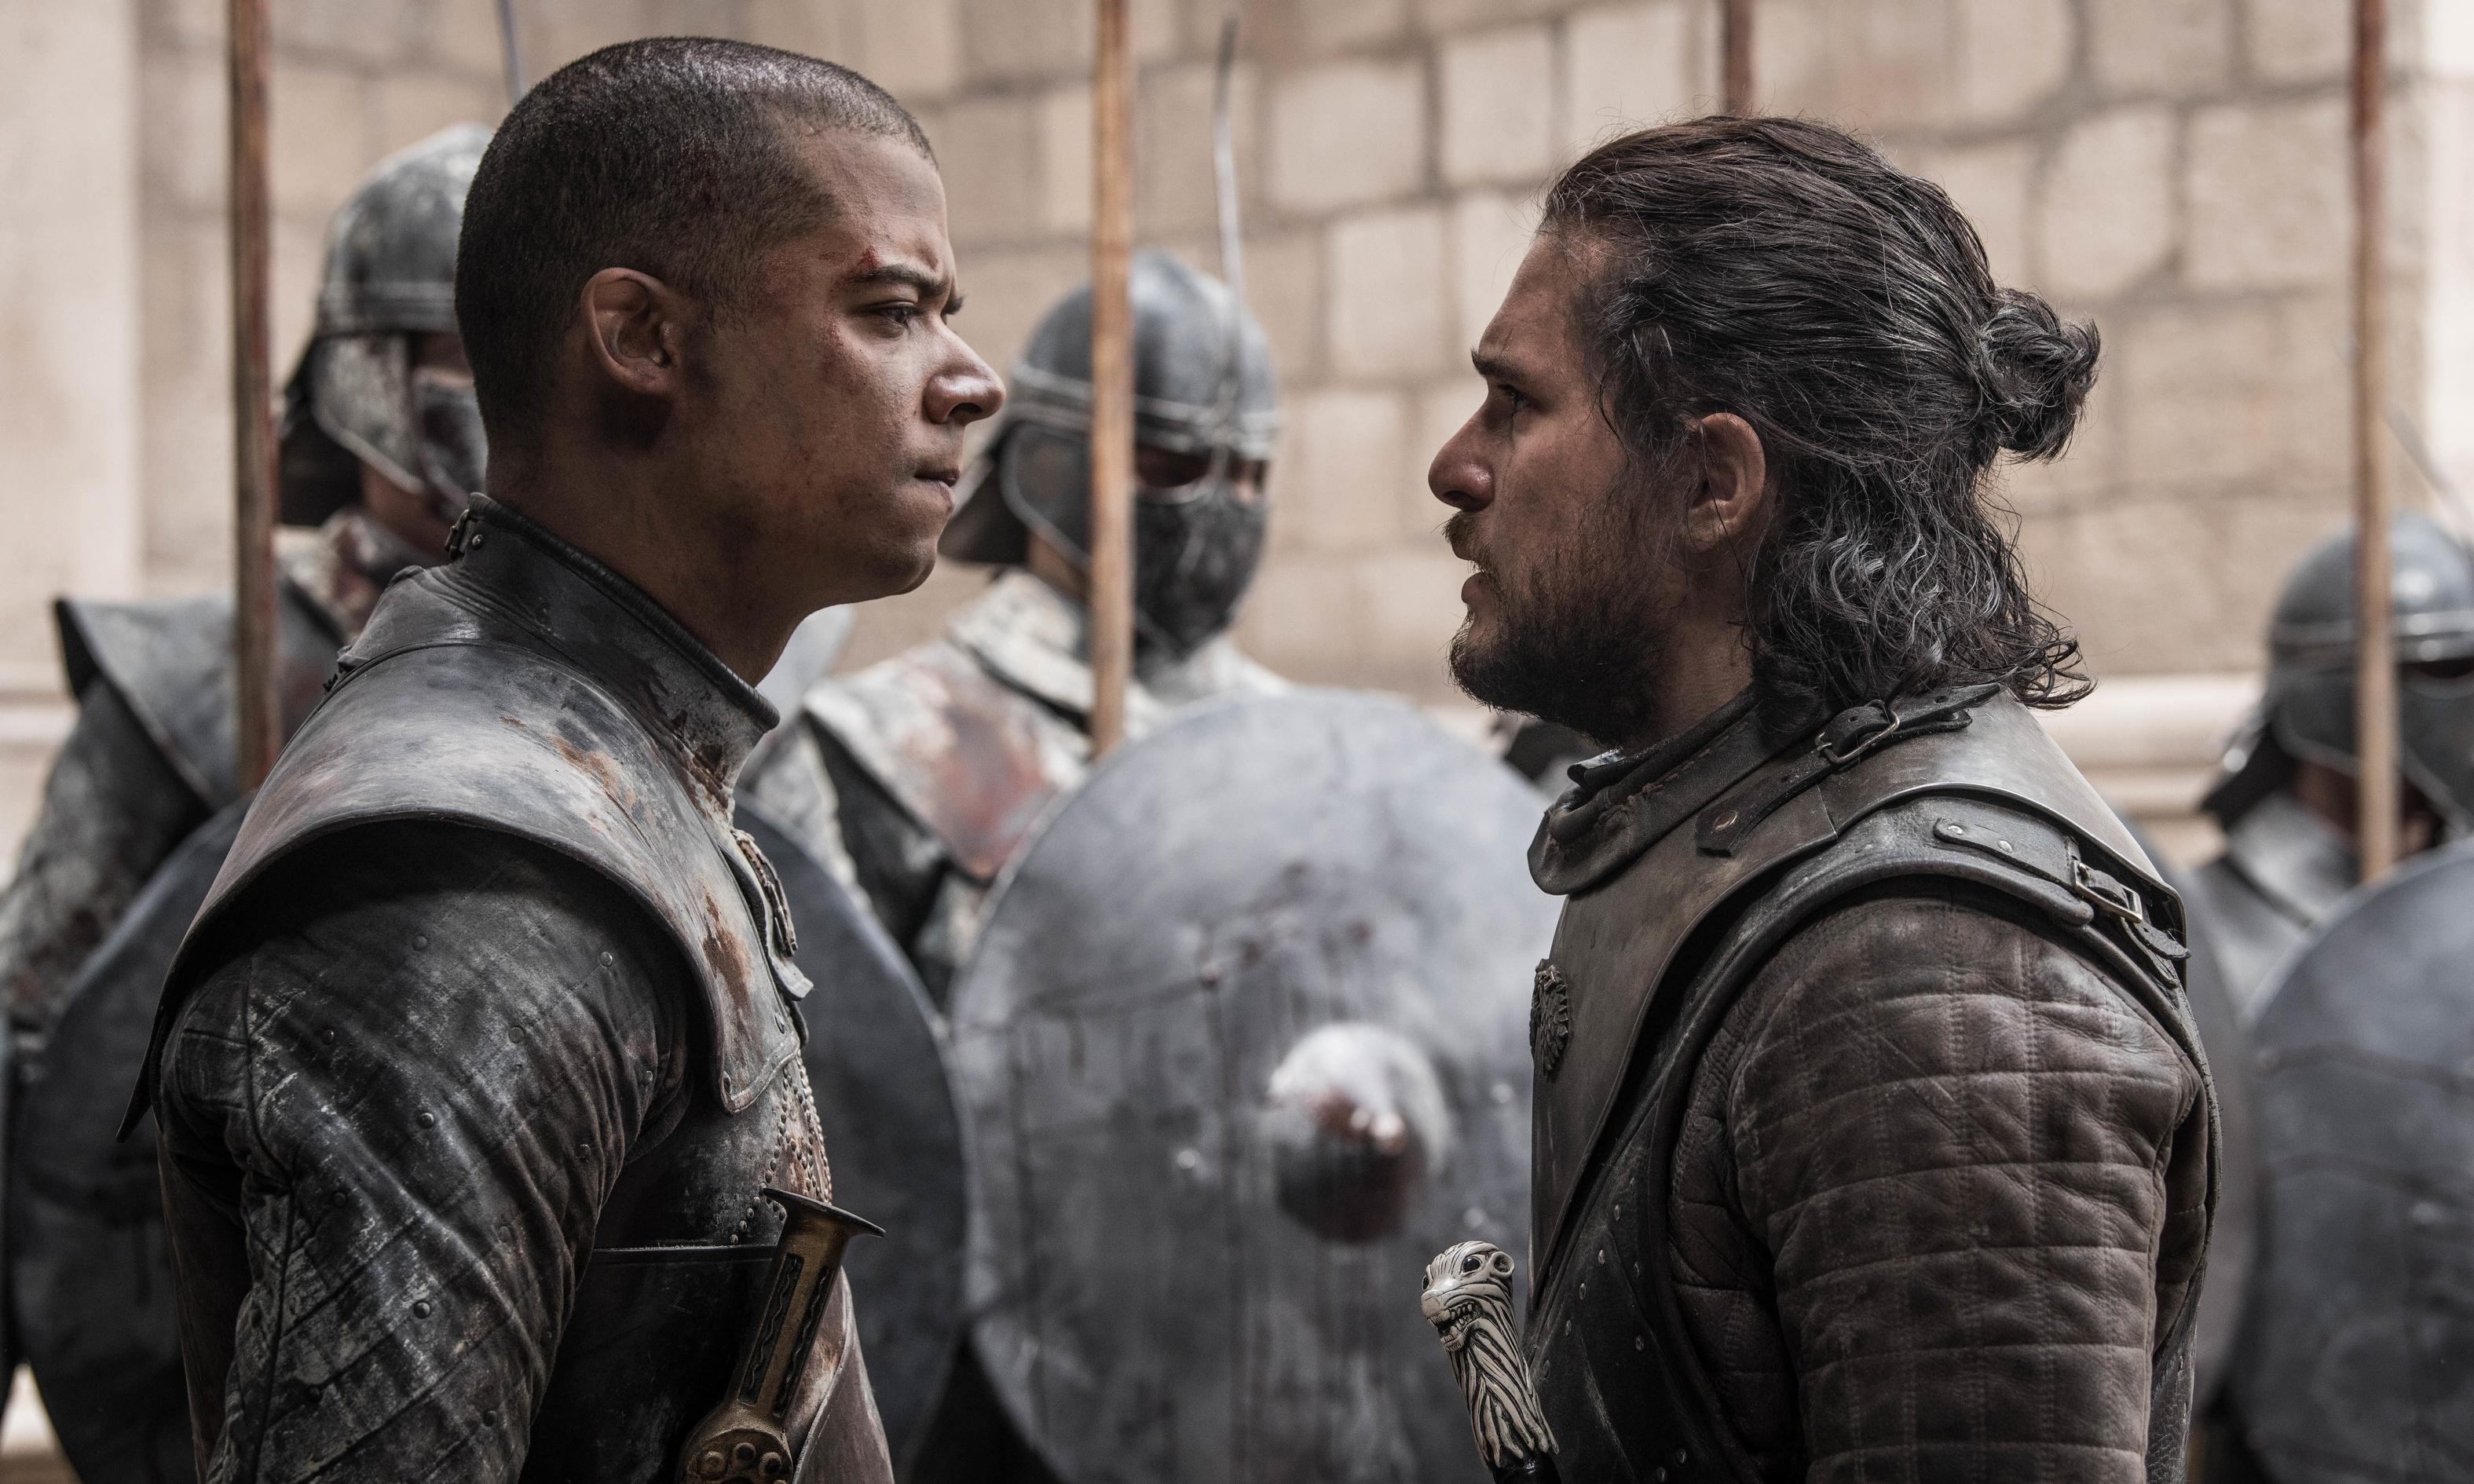 Game of Thrones review – epic final episode corrects some major wrongs